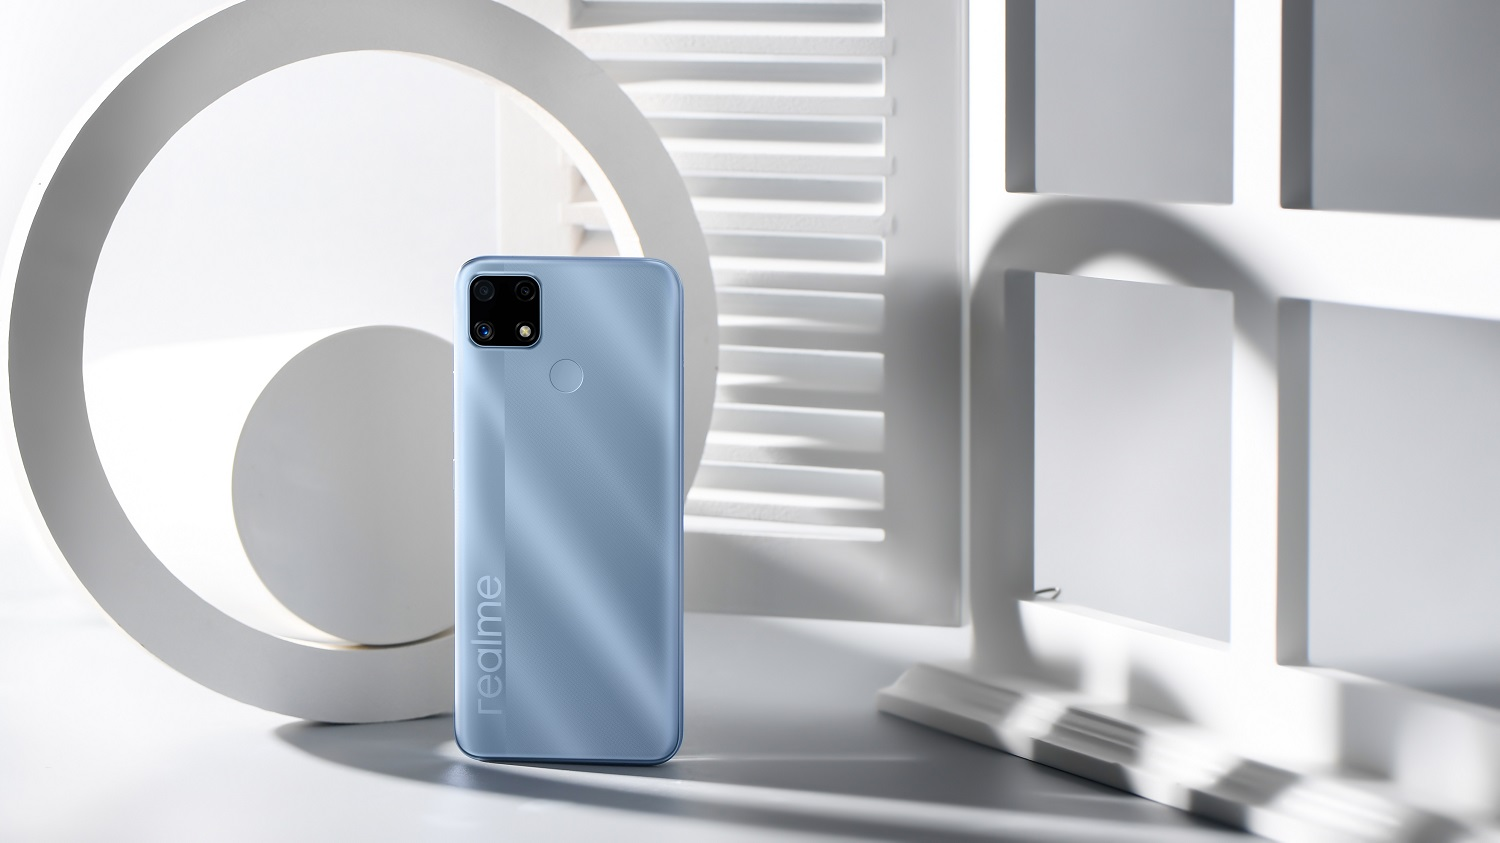 Get The New realme C25s For Only RM1 On Maxis And Hotlink